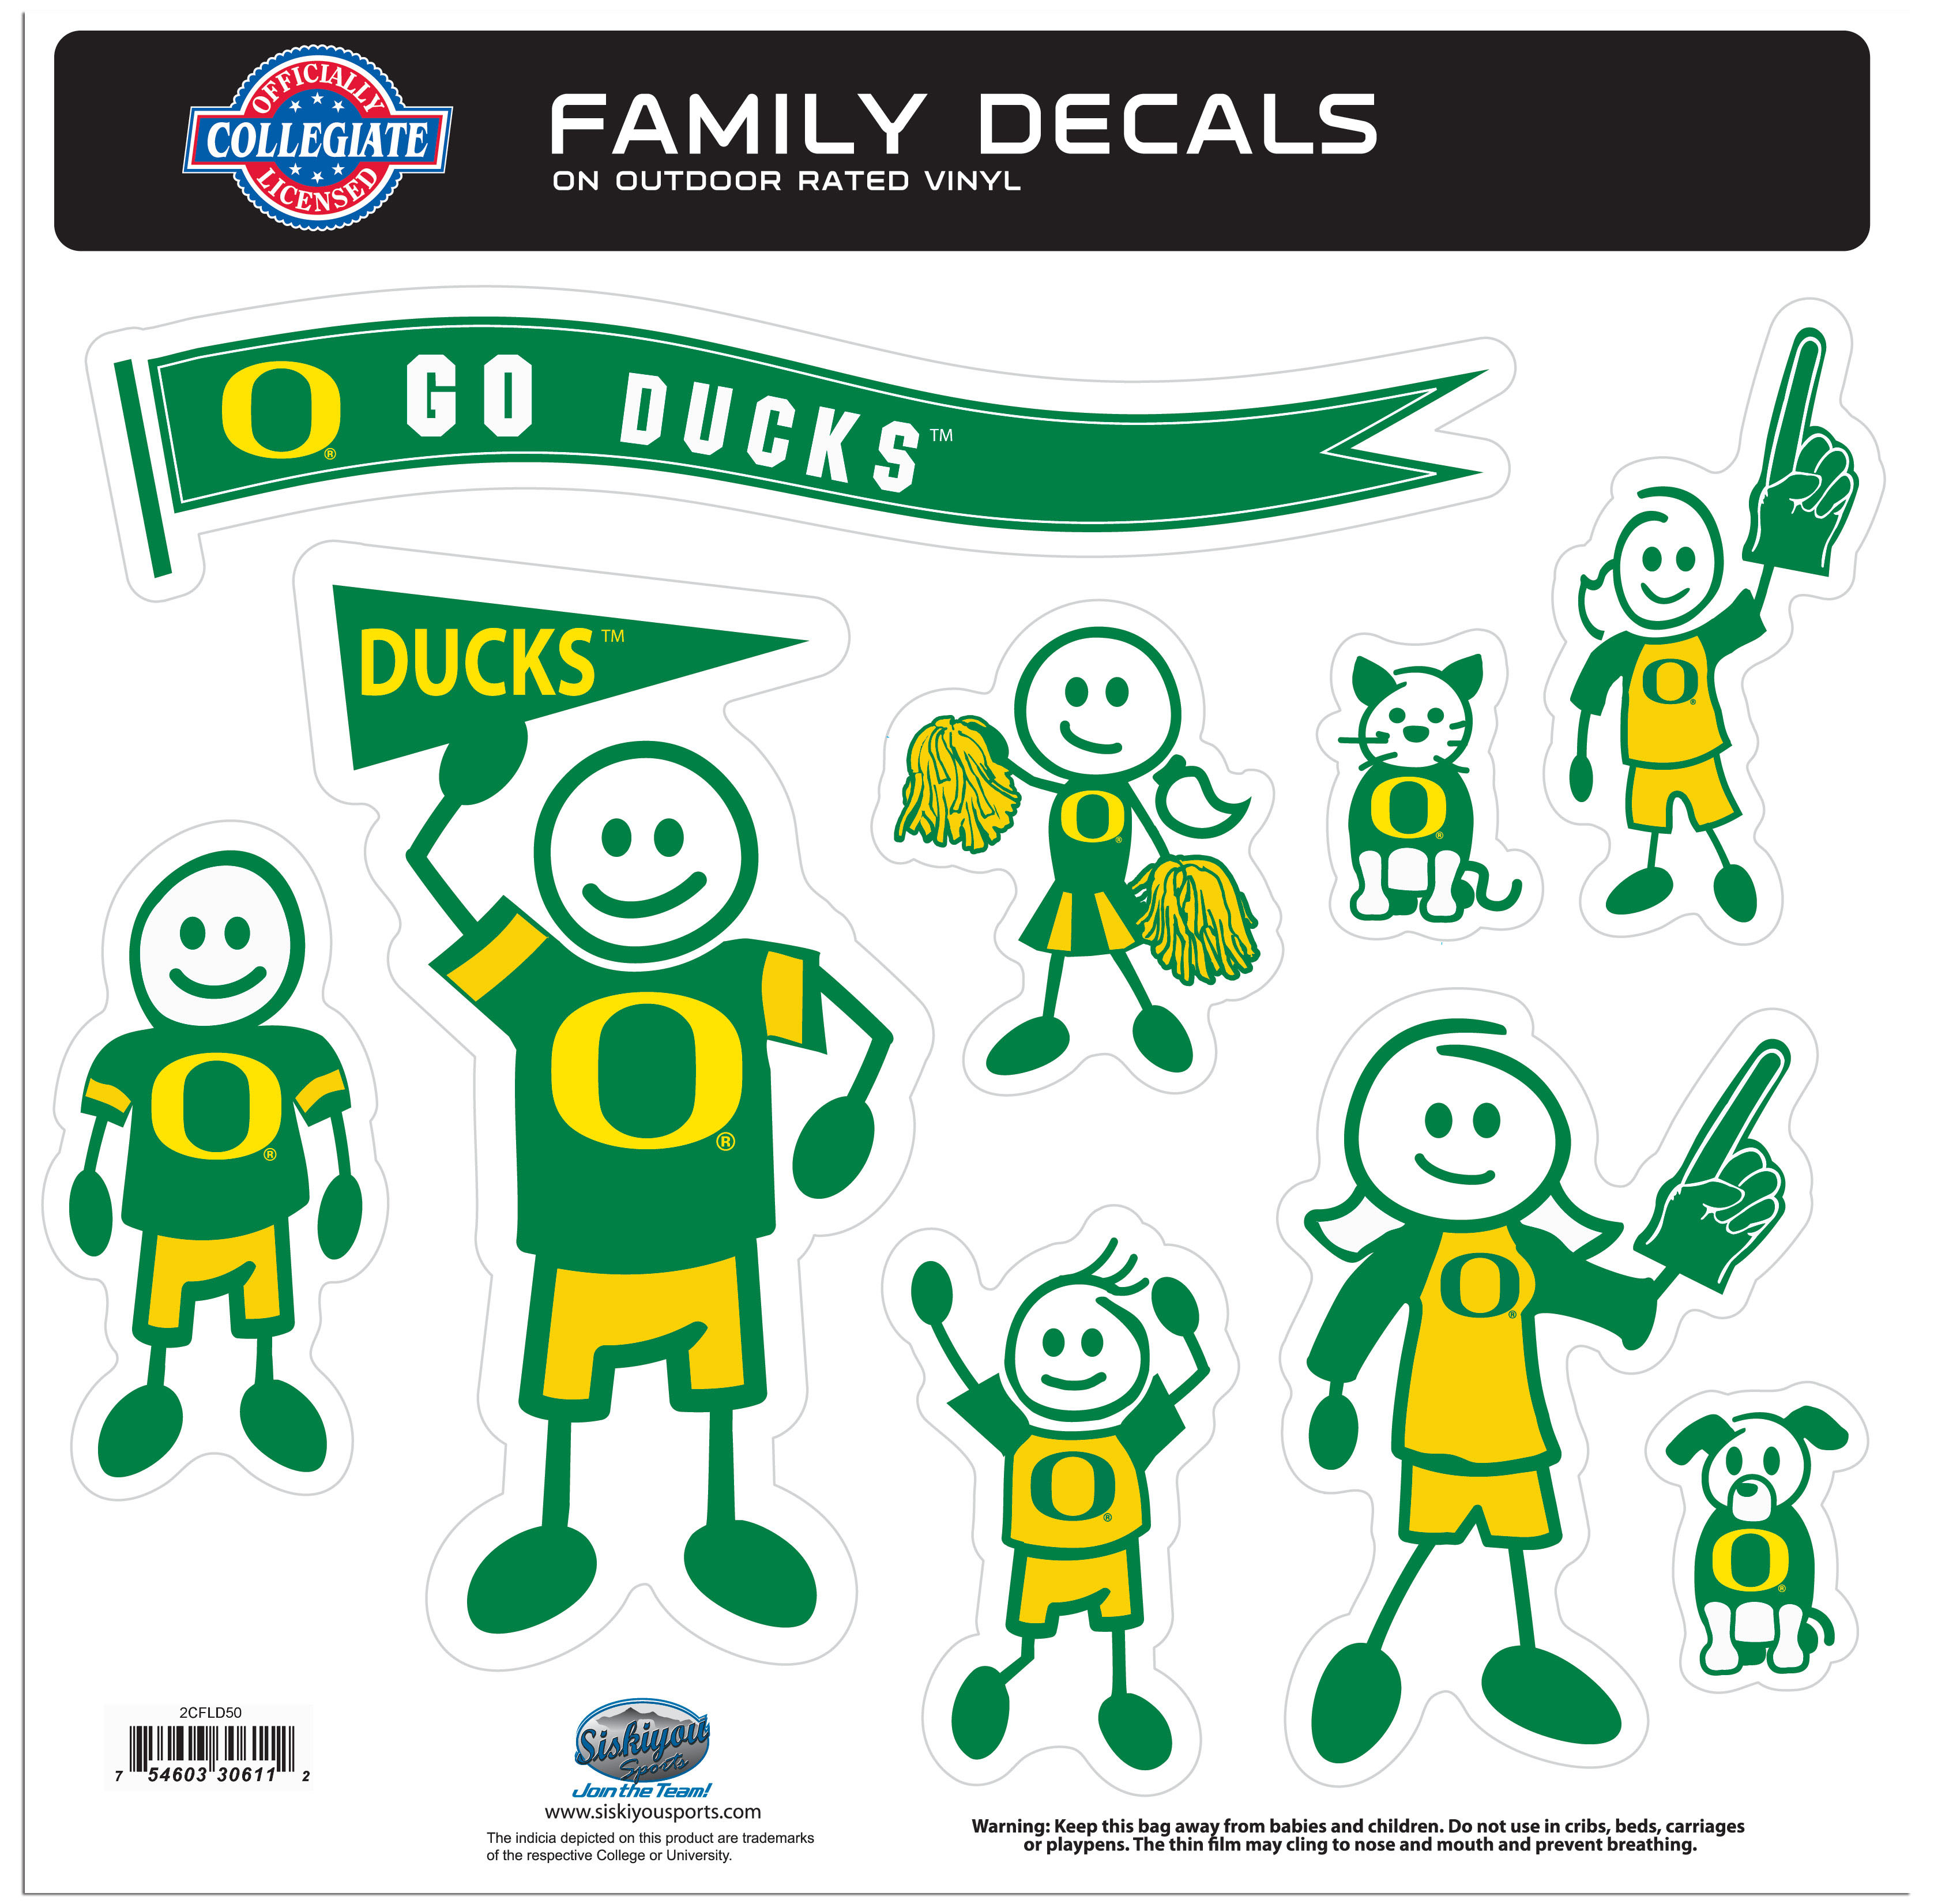 Oregon Ducks Family Decal Set Large - Show off your team pride with our Oregon Ducks family automotive decals. The set has individual family themed decals that each feature the team logo. The 11 x 11 inch decal set is made of outdoor rated, repositionable vinyl for durability and easy application.